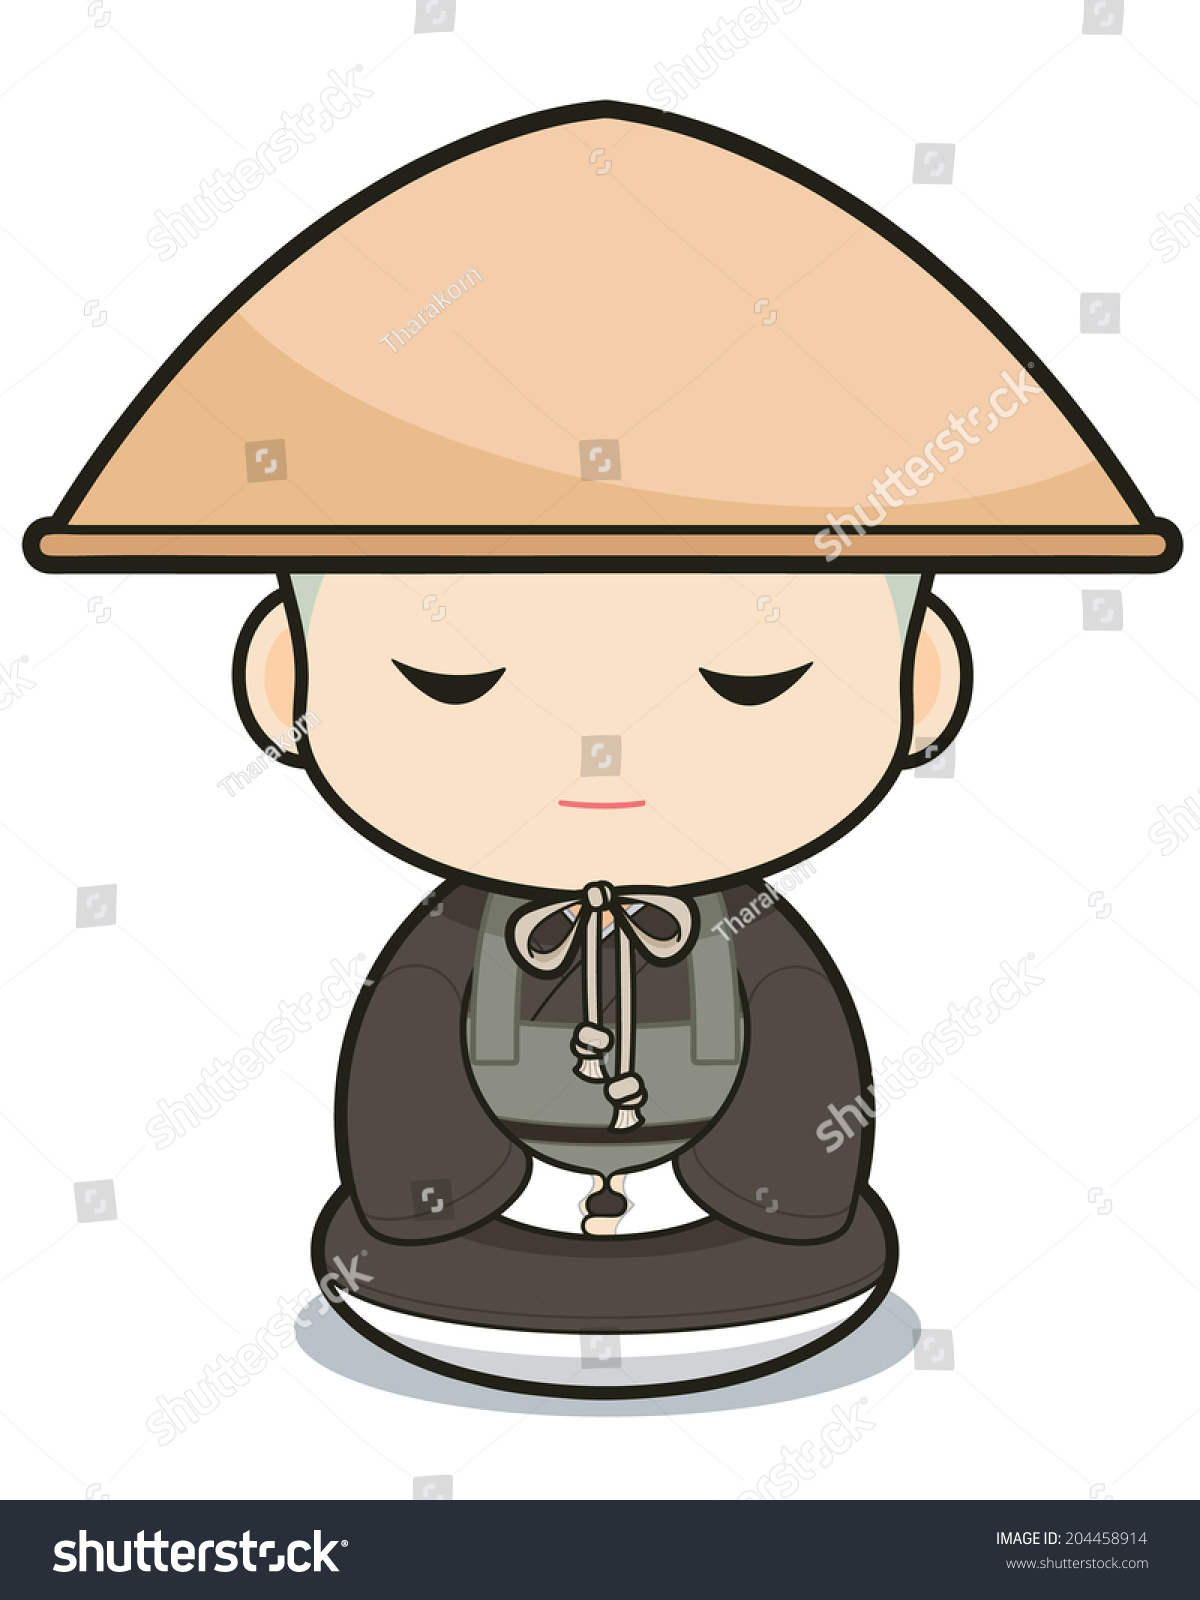 Buddhist Monasticism Cartoon Japanese Stock Vector 204458914 ...